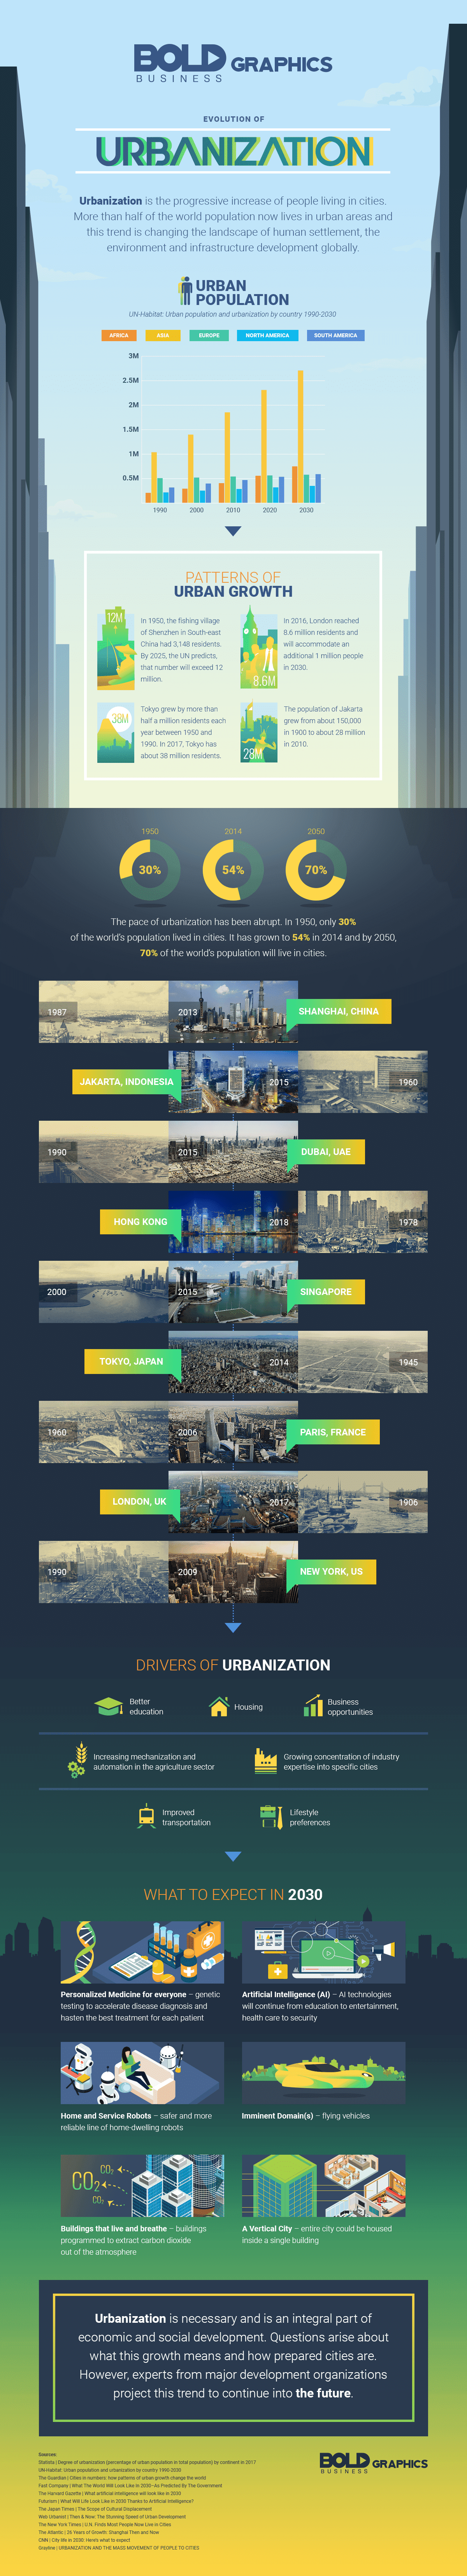 evolution of urbanization infographic